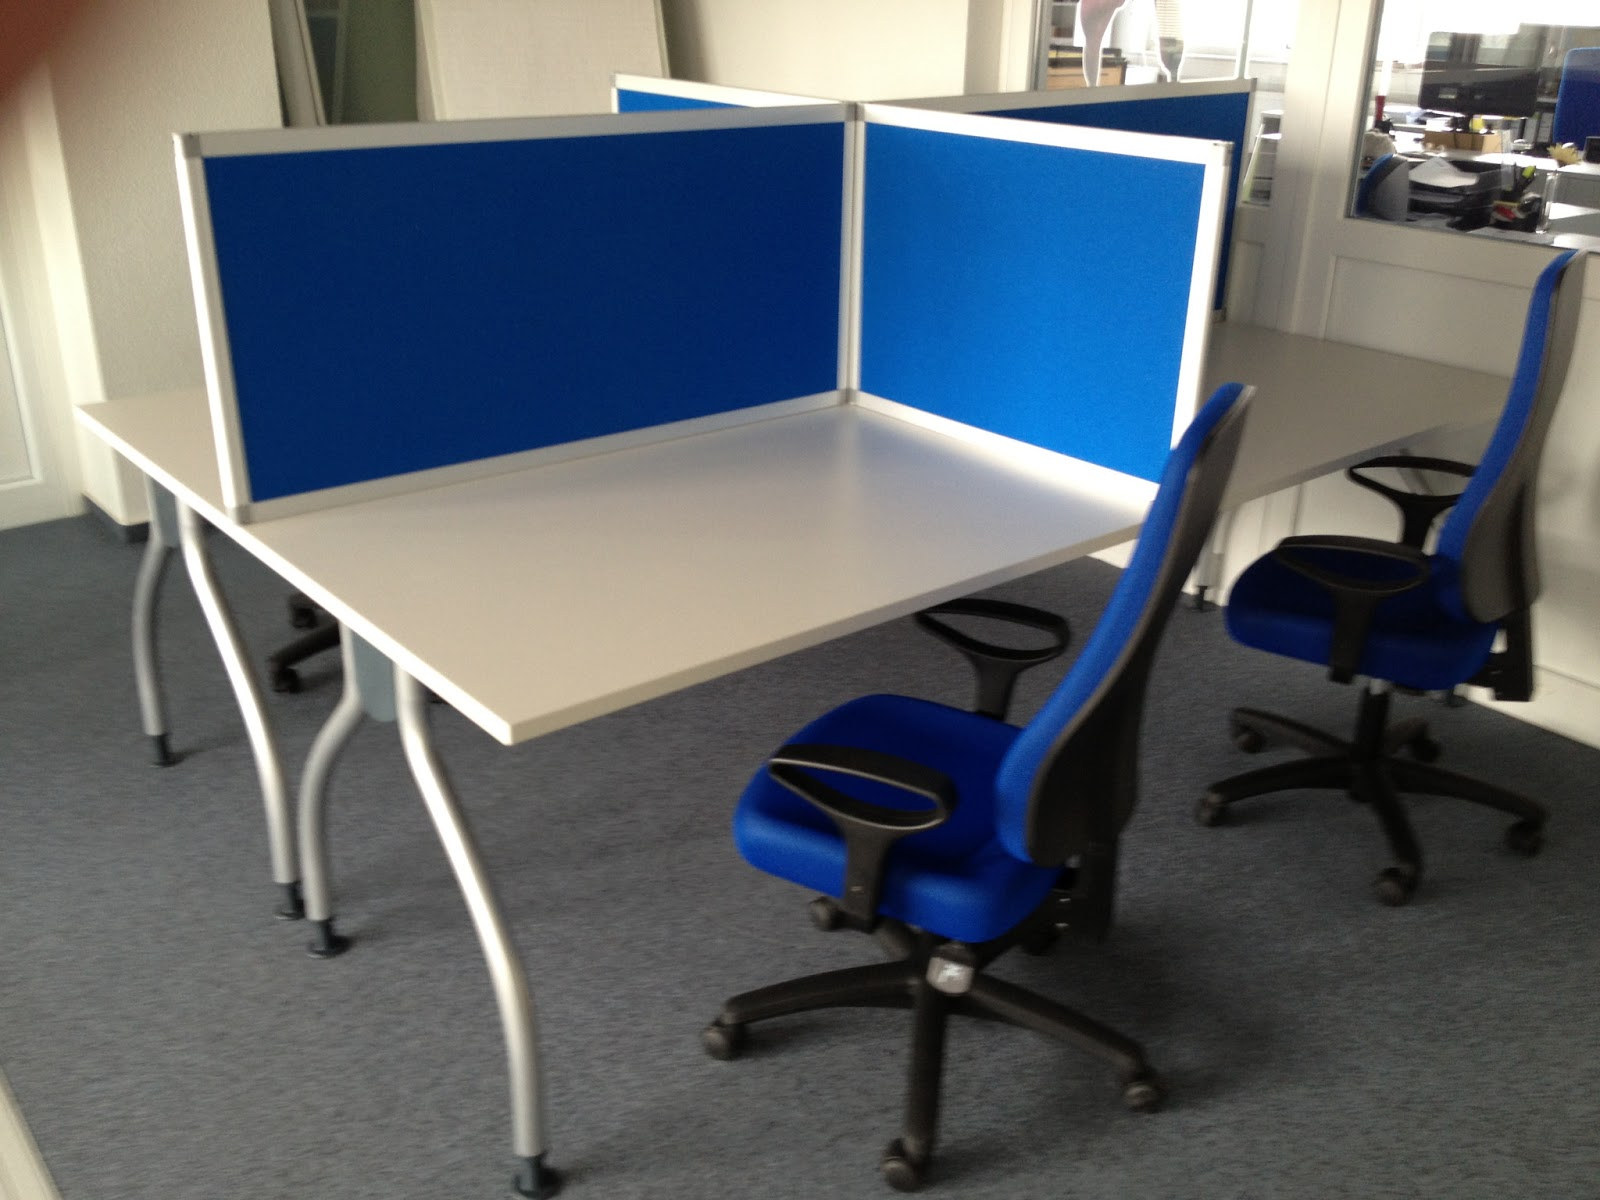 Colour up your office !: Mobile Glaswand Glasschiebewand im Büro und ...